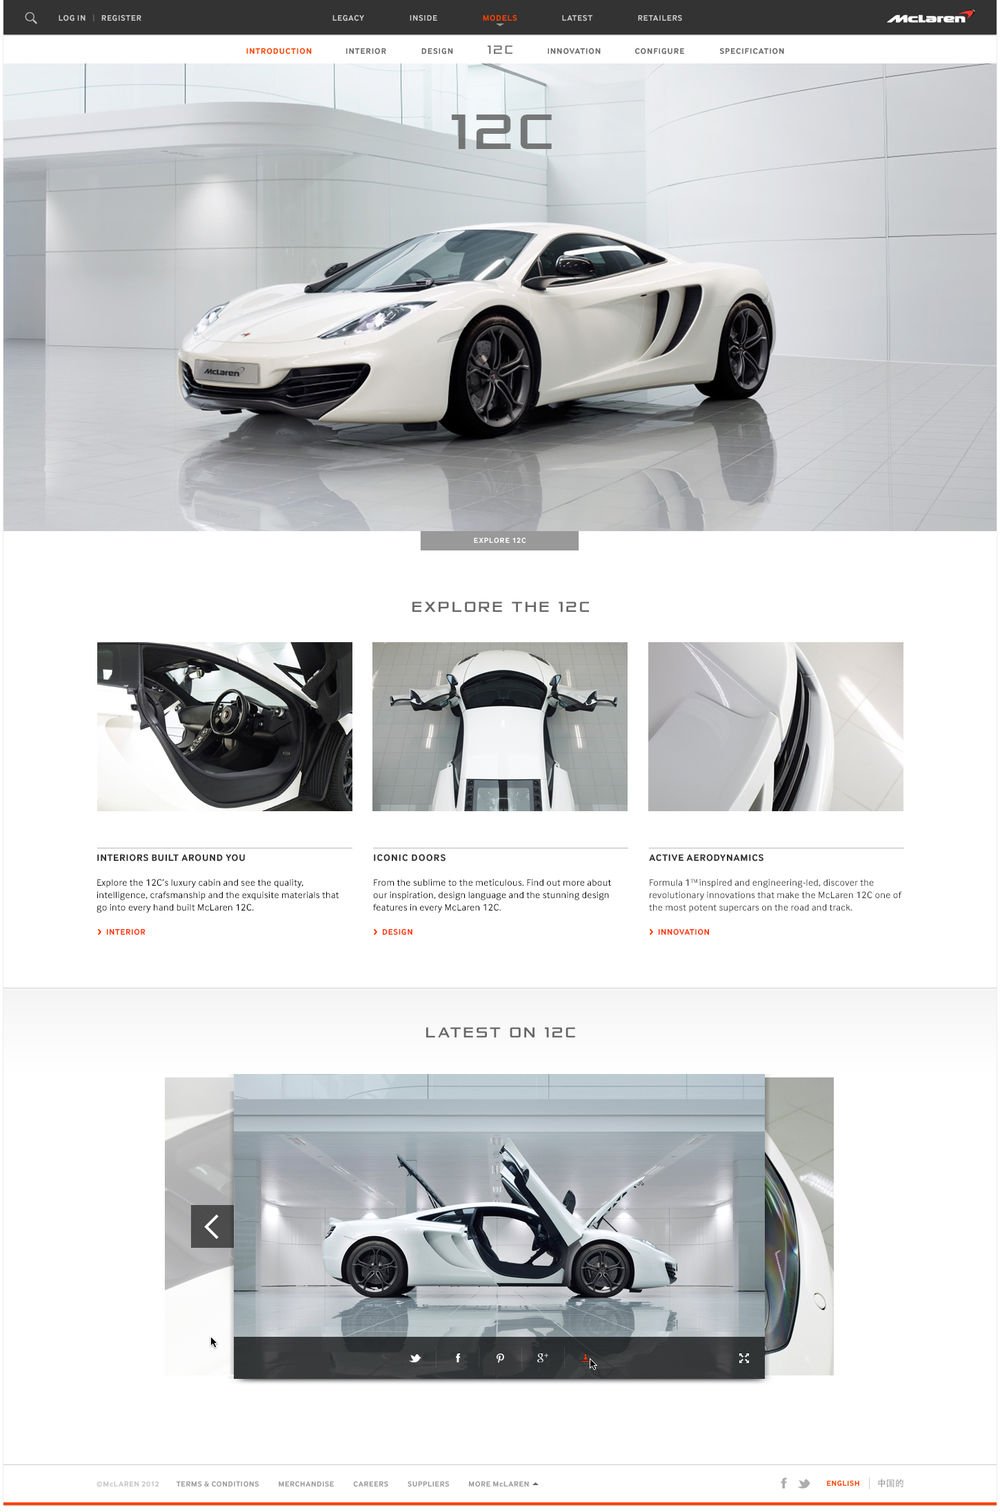 McLaren_Models_12C-Introduction.jpg